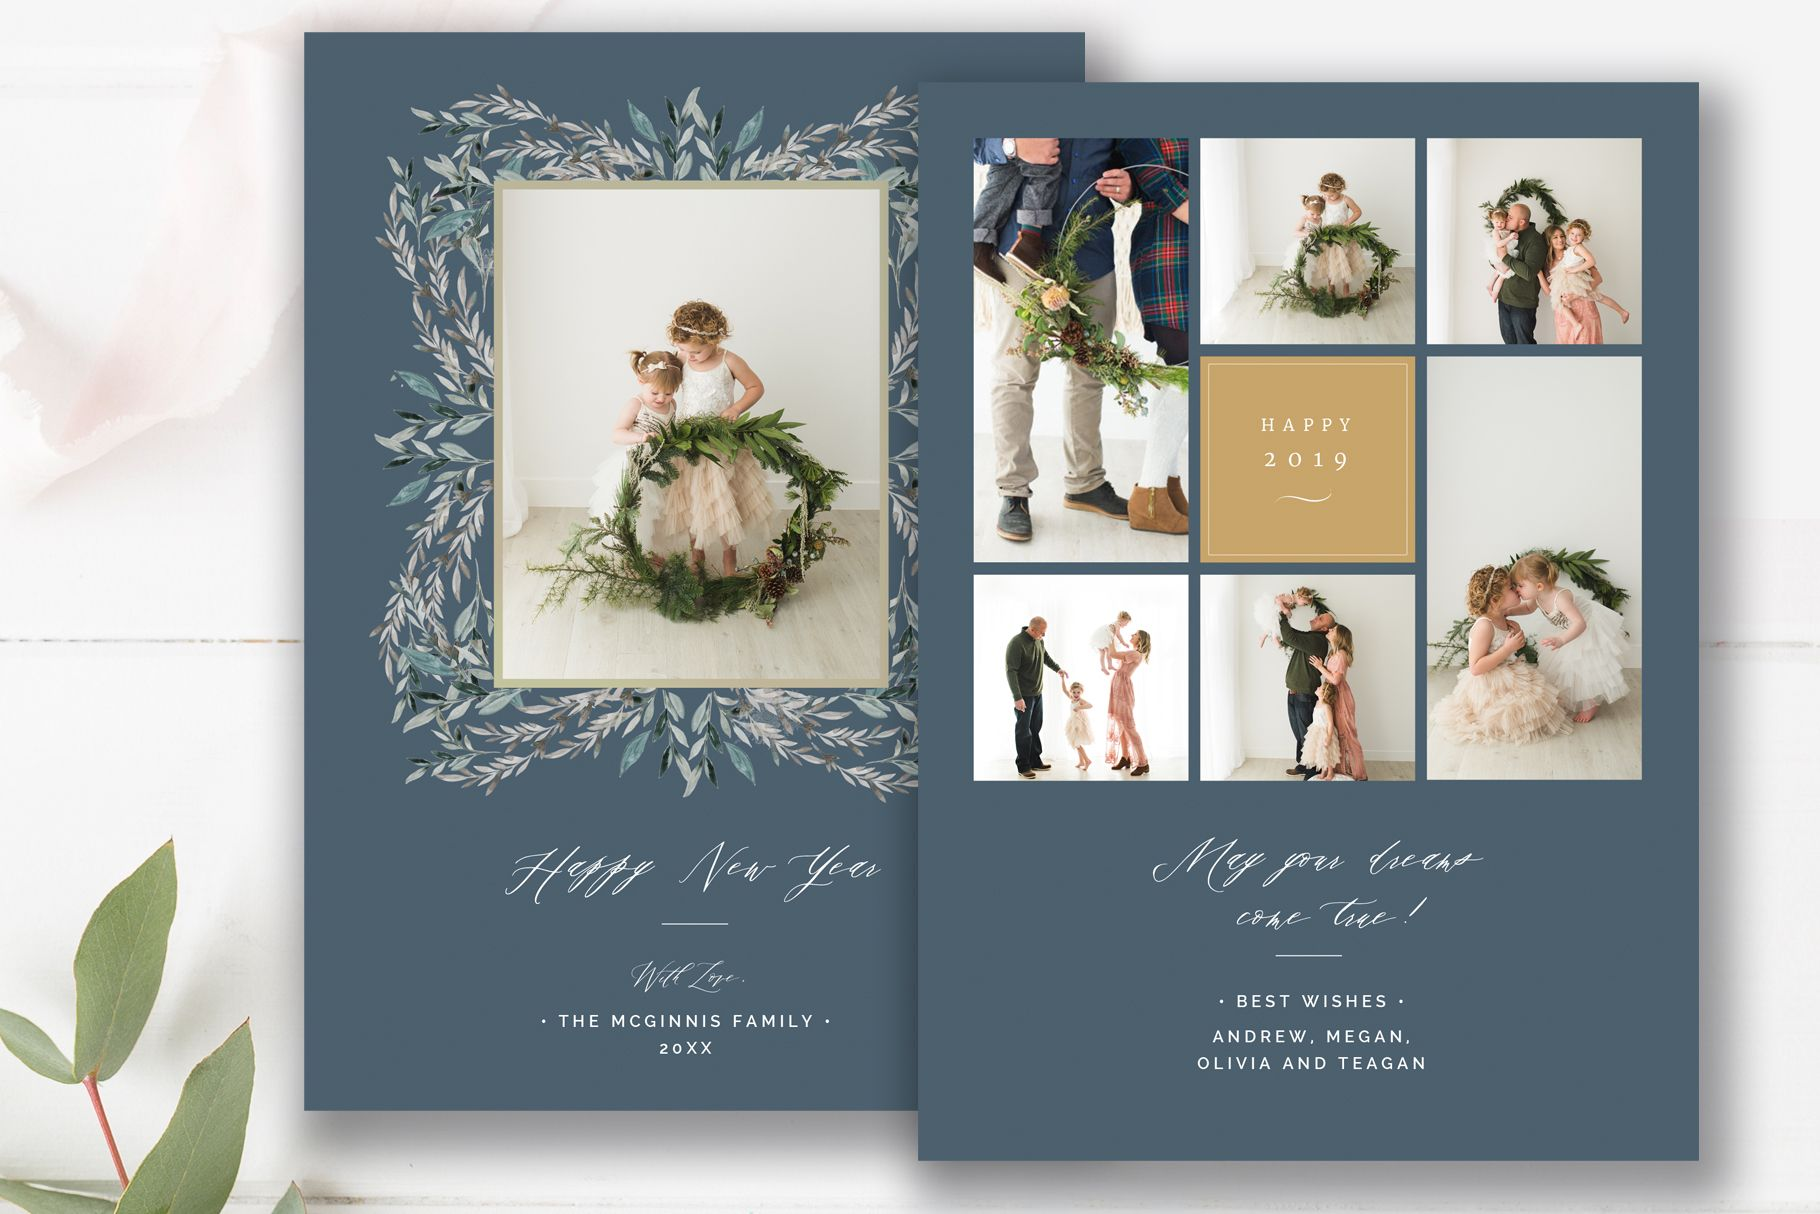 Happy New Year Card Celebrate The New Year In Style With This Classic Photo Card Template Templates Can Photo Card Template Happy New Year Photo Photo Cards